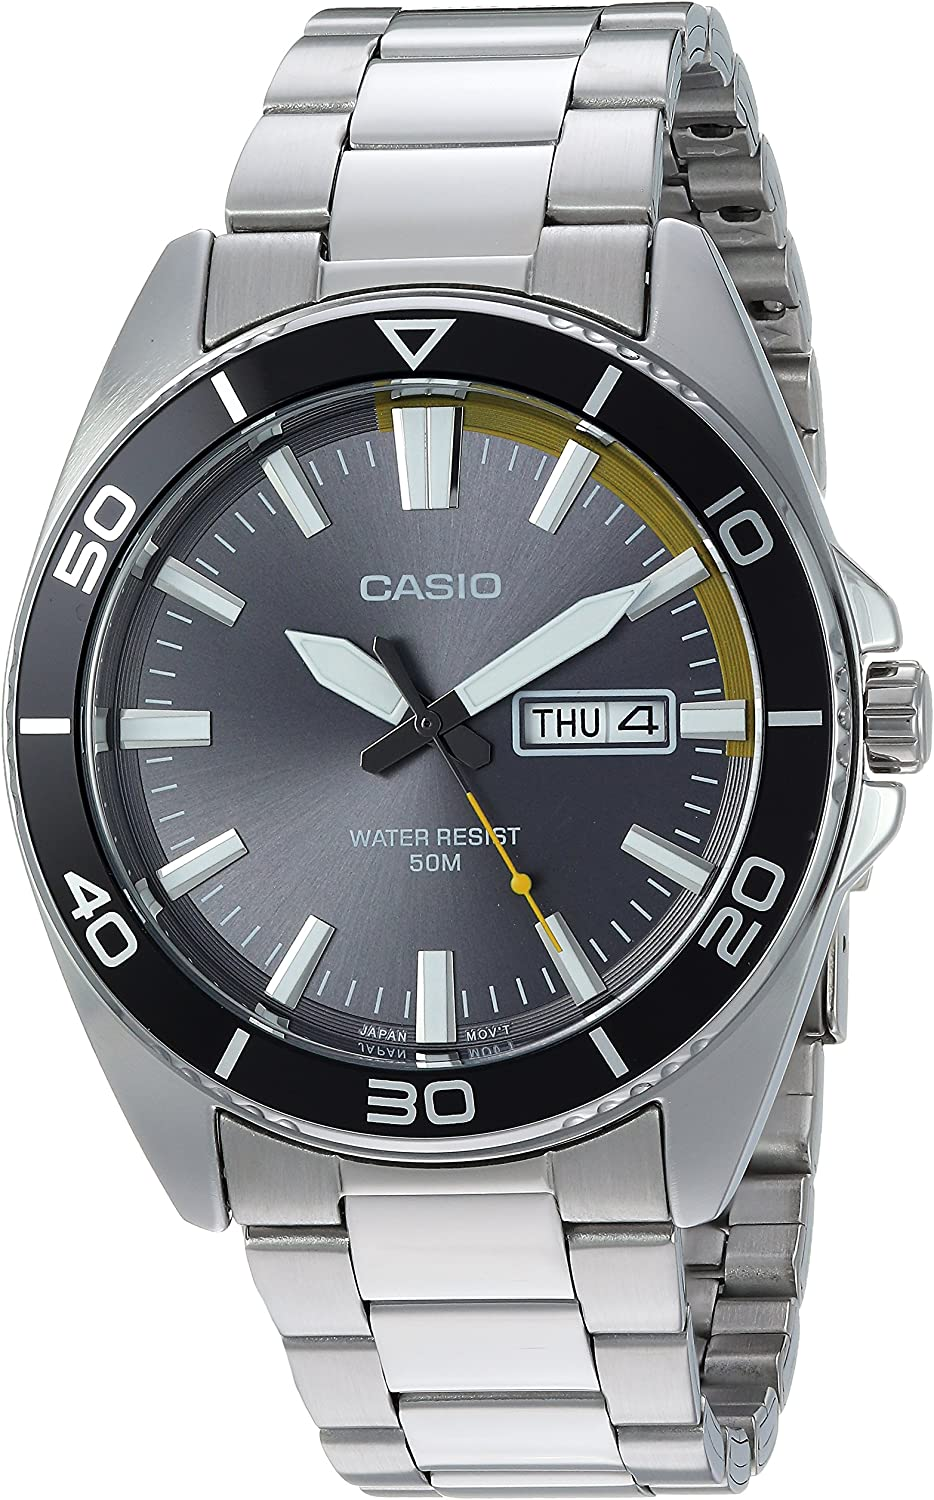 Casio Men s Tough Solar Quartz Watch with Resin Strap, Black, 25 Model AQ-S810W-1A4VCF